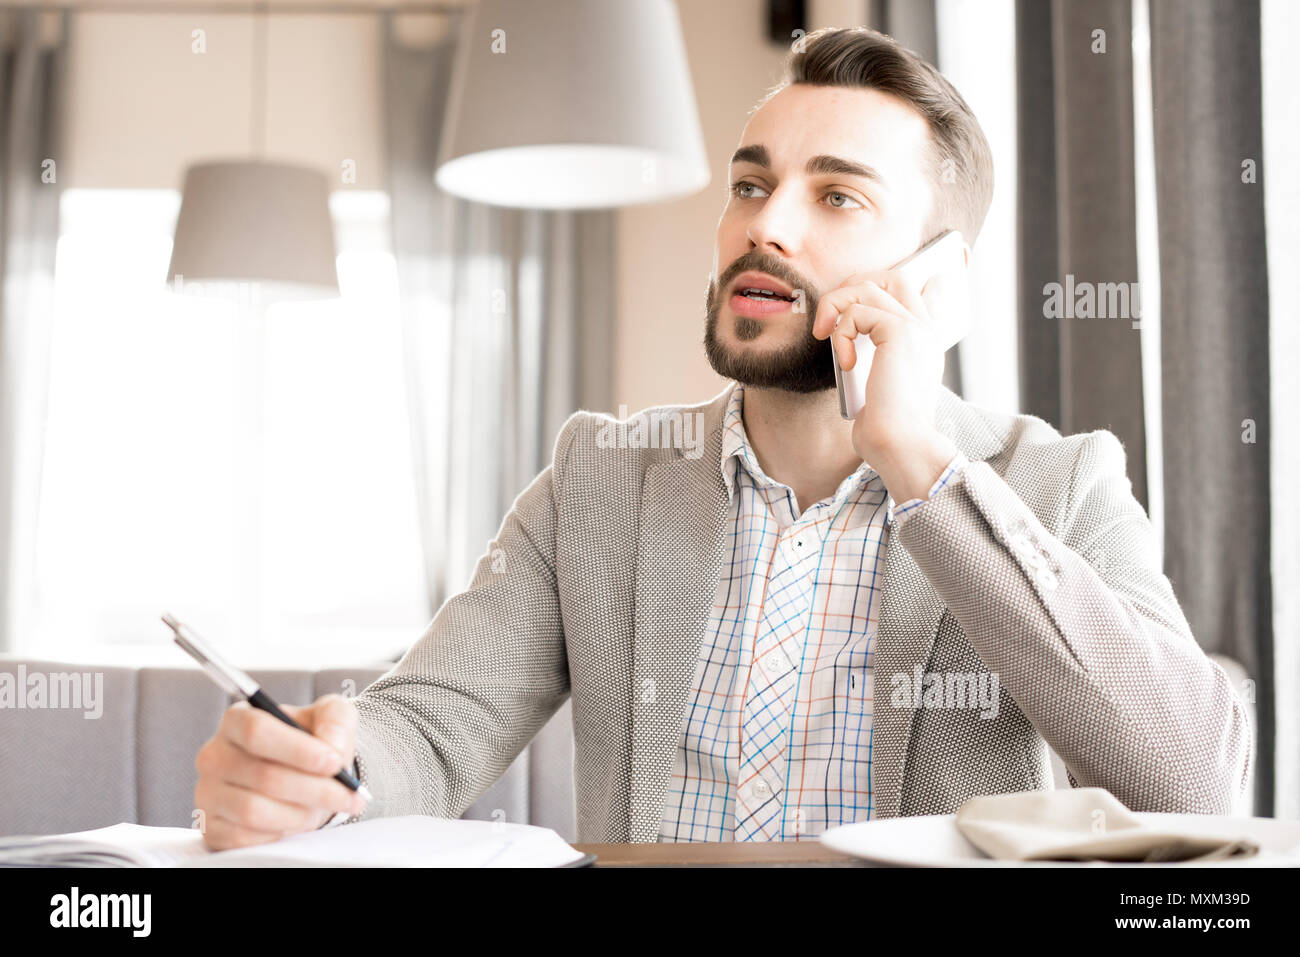 Barbus modernes businessman working in cafe Photo Stock